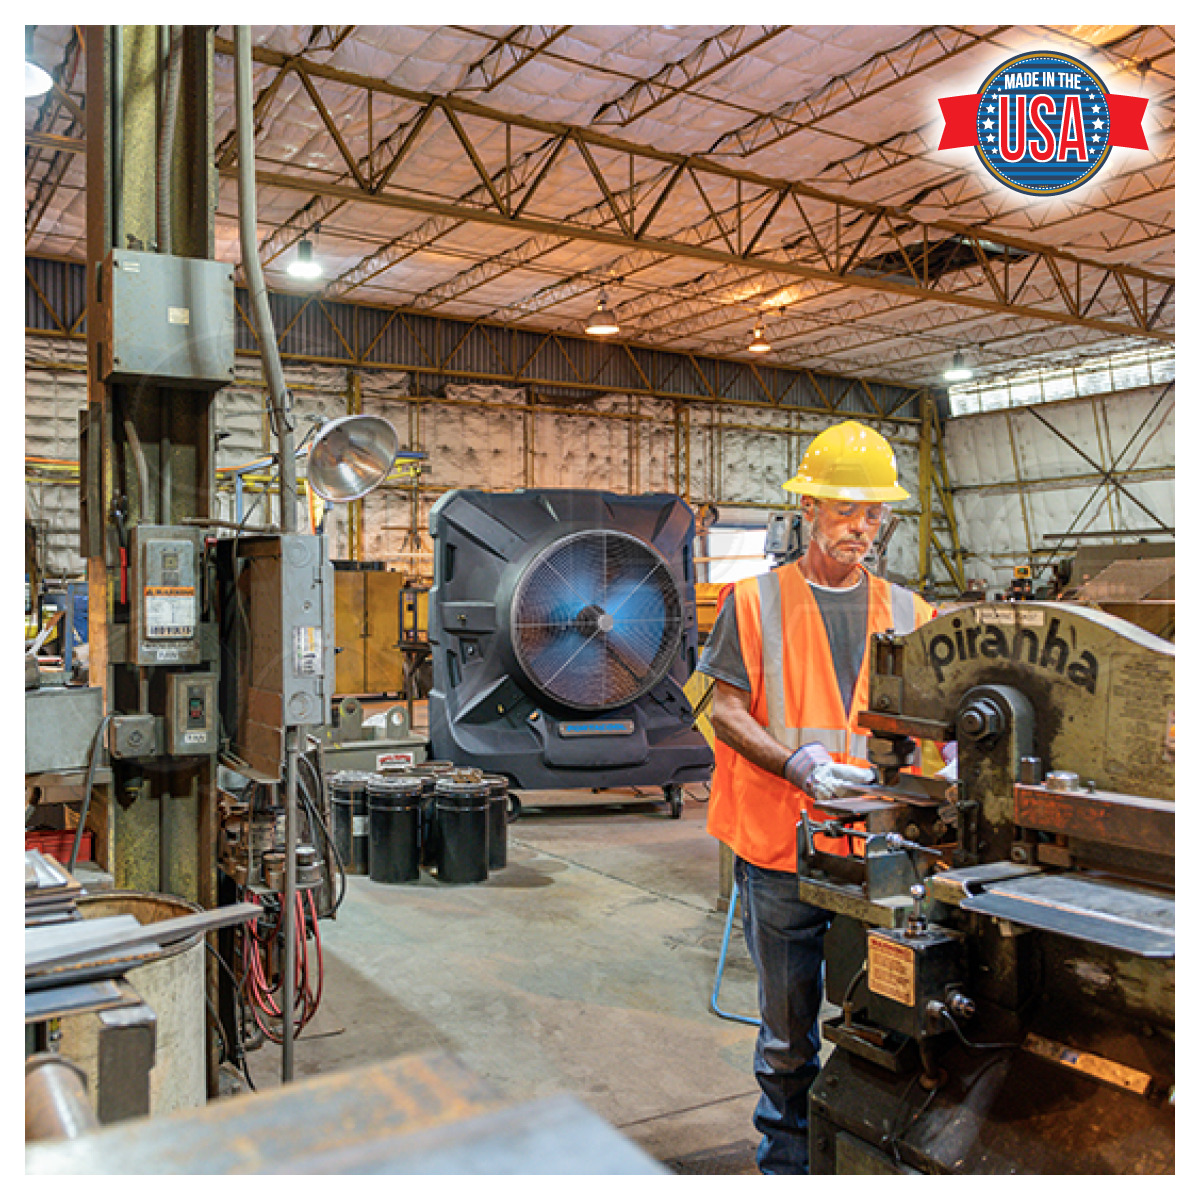 Portacool Jetstream 260 Portable Evaporative Cooler in a manufacturing plant